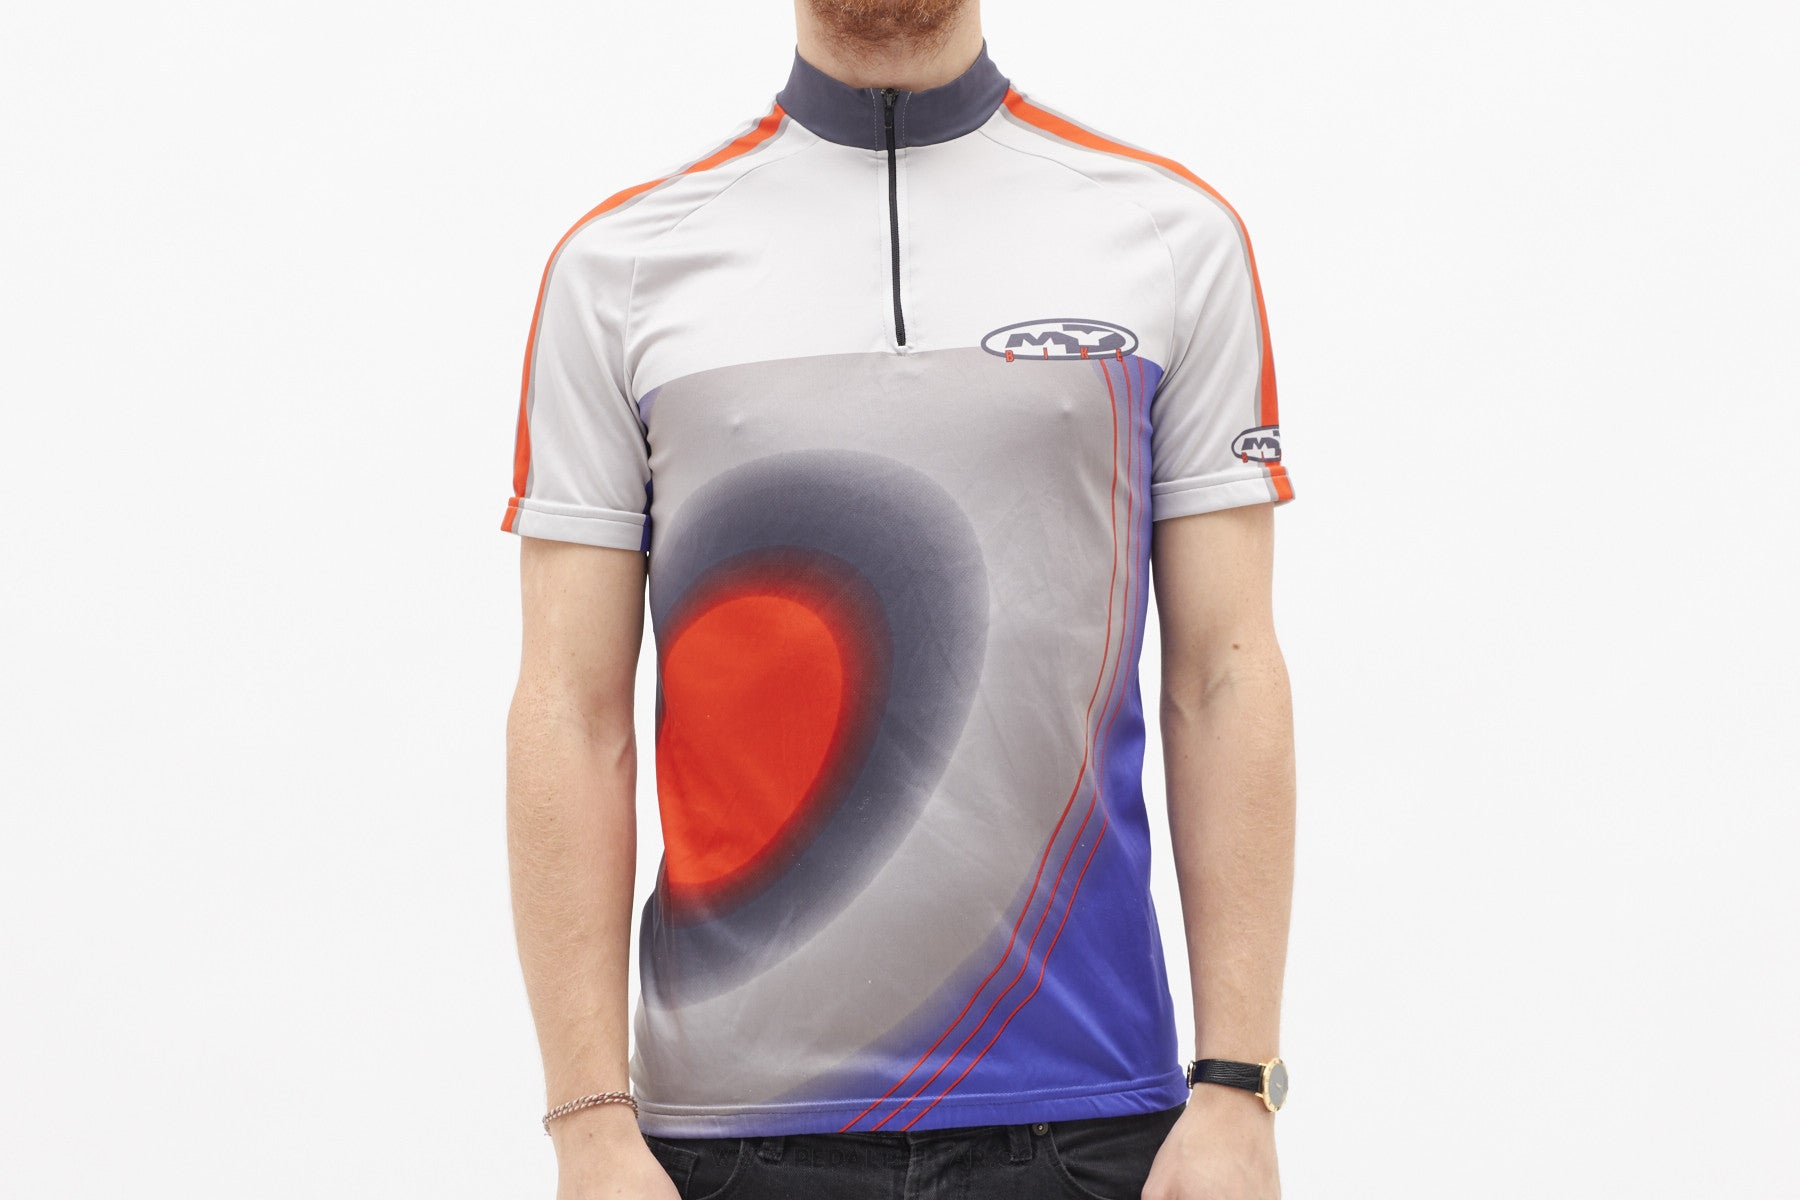 My Bike Vintage Short Sleeved Cycling Jersey - Pedal Pedlar - 1 e0ff4519b